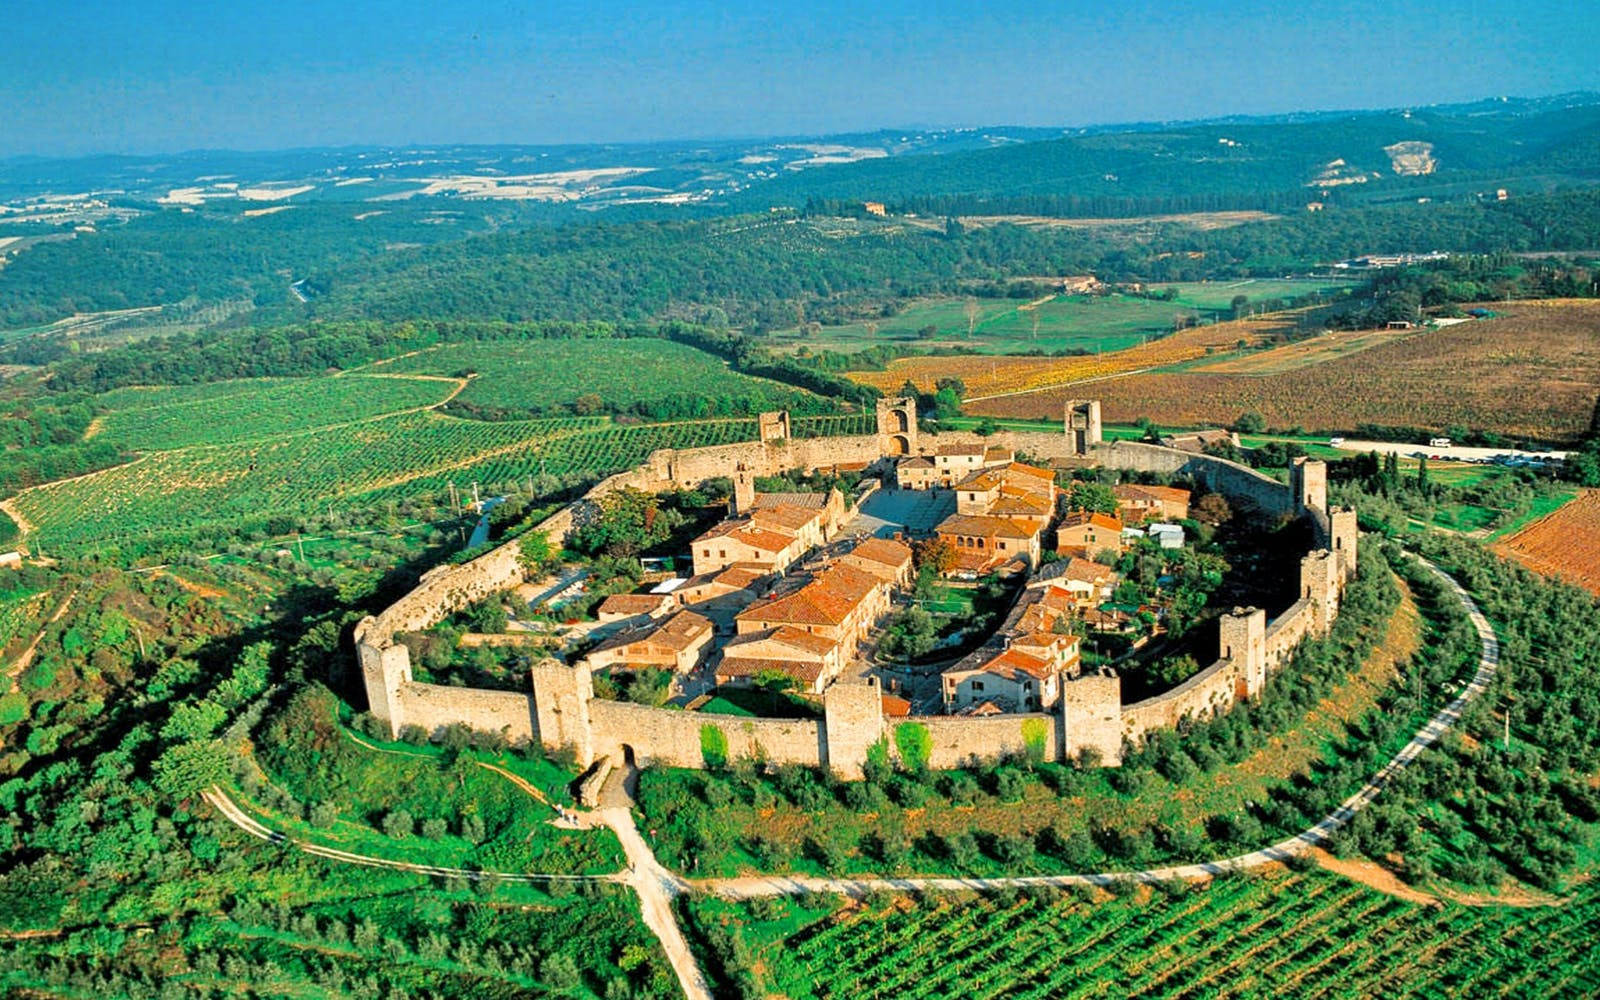 Full Day tour of San Gimignano, Siena, Monteriggioni and Pisa with Hotel Transfers